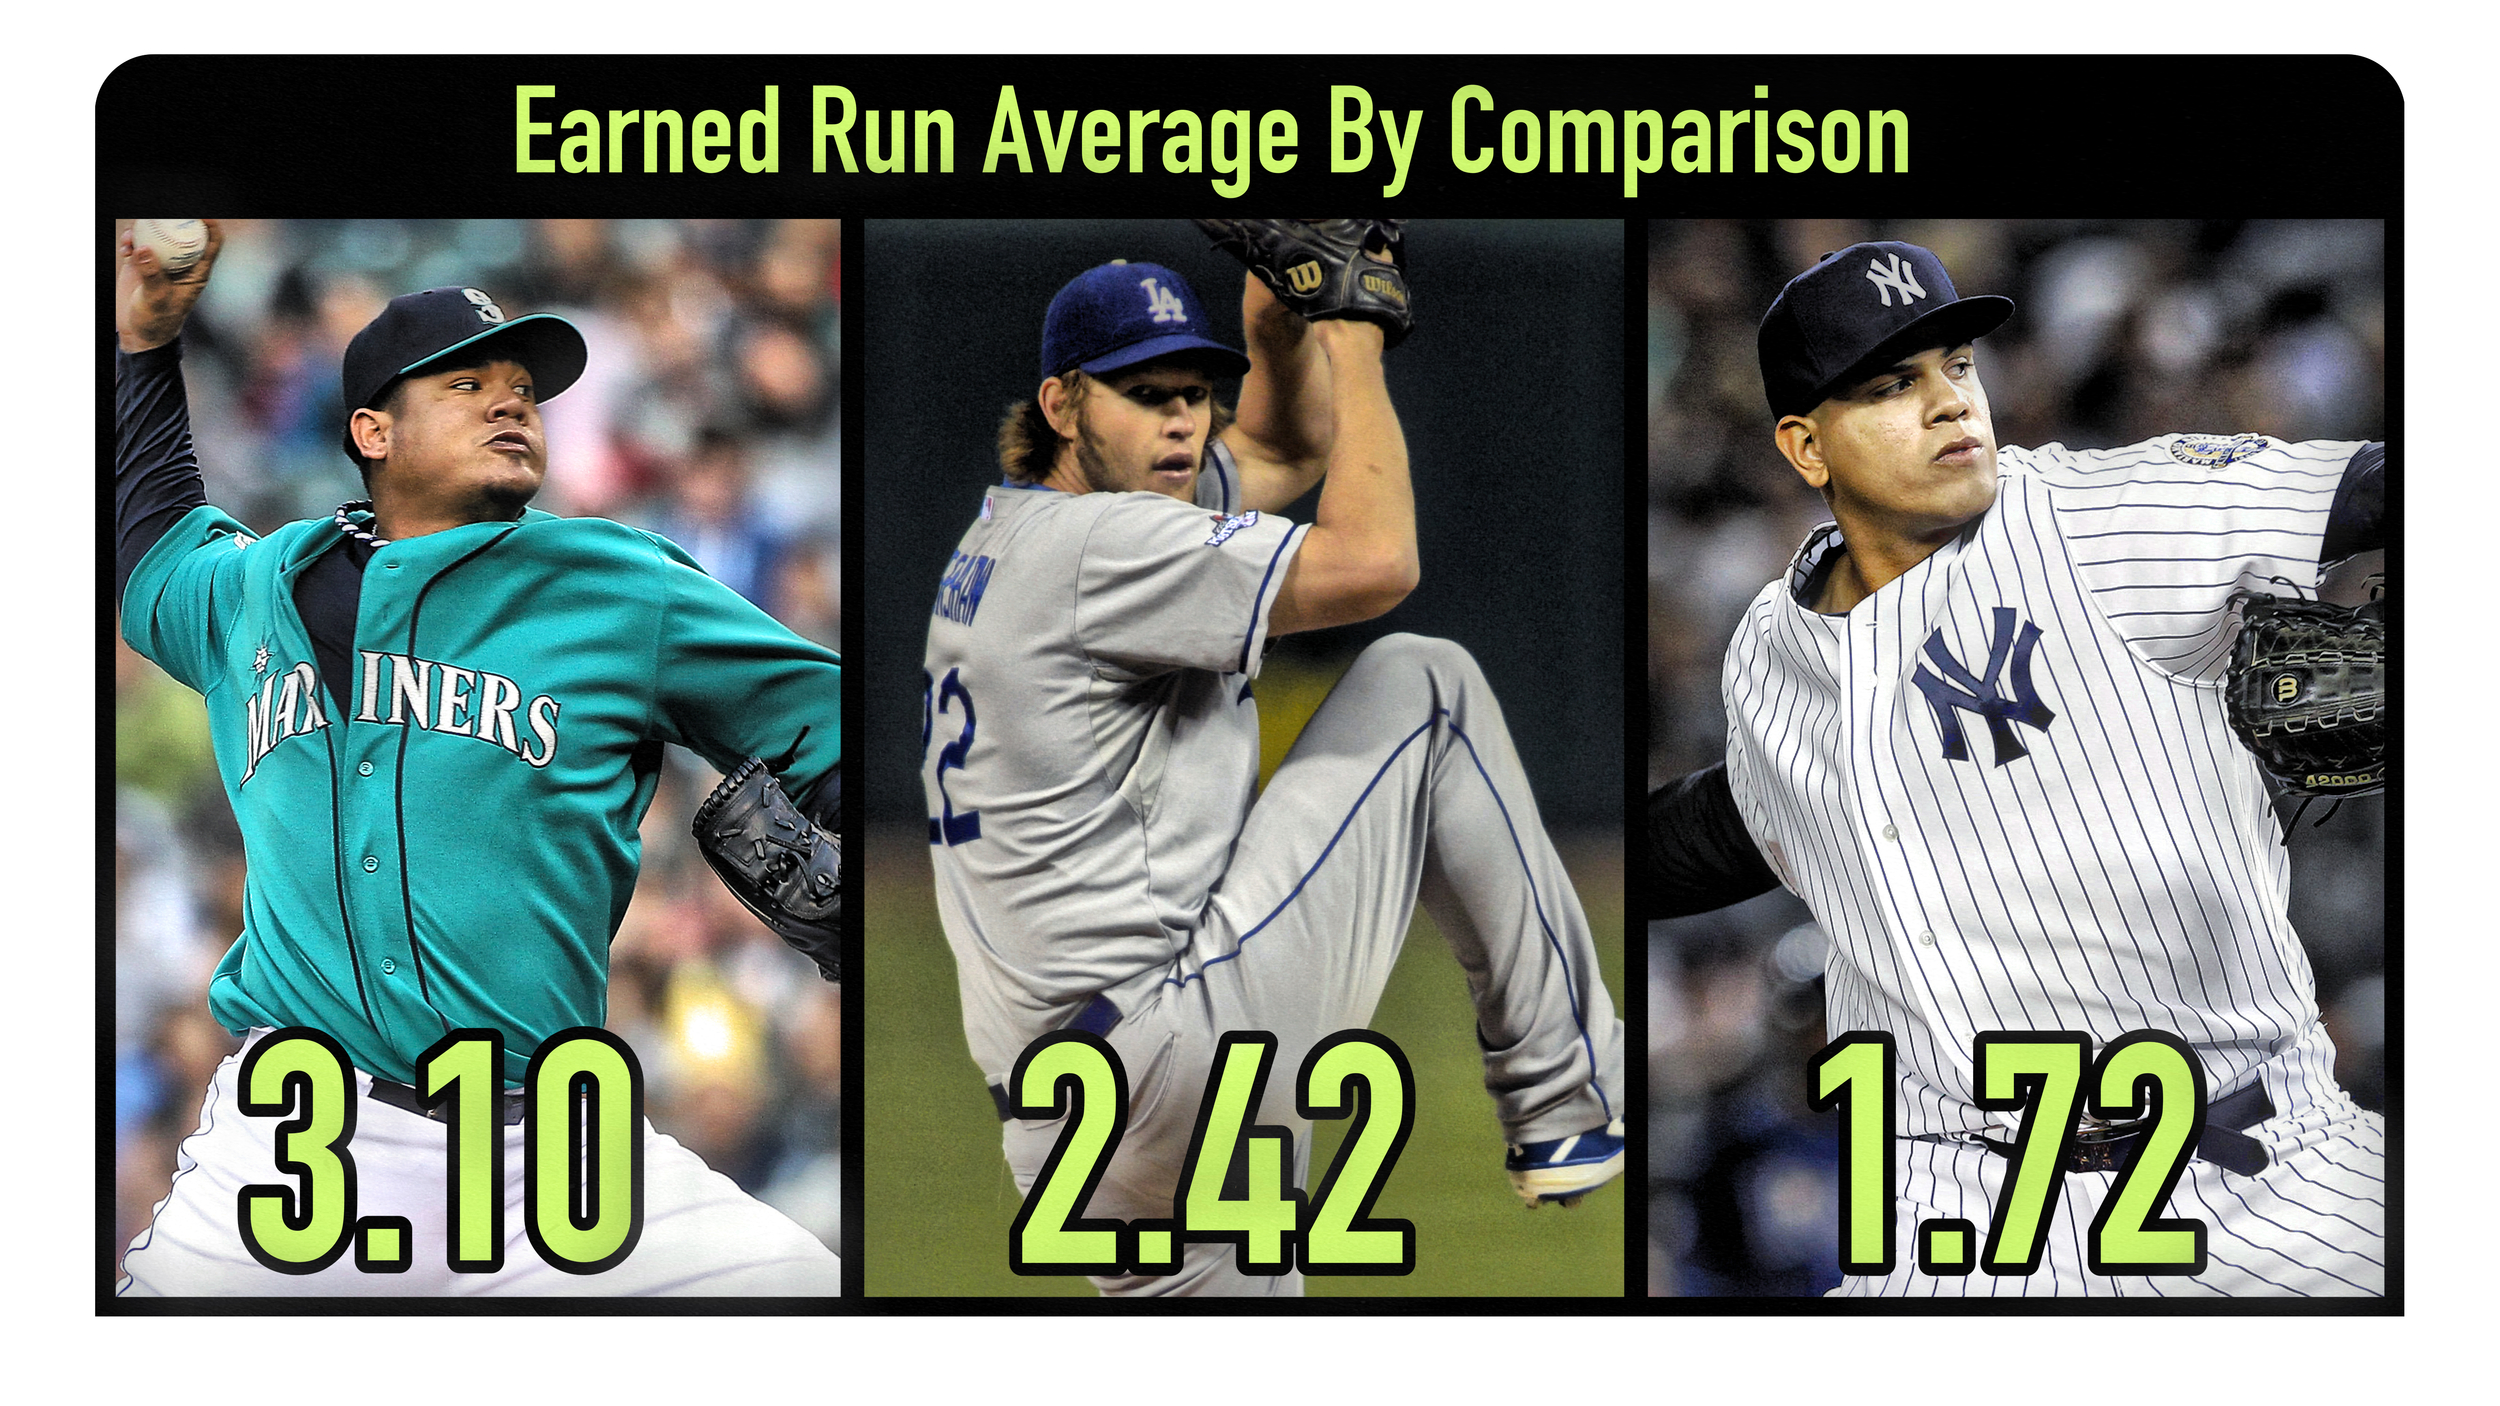 By comparison, where does Noah Syndergaard's 2.96 ERA rank him amongst pitchers like Felix Hernandez of the Seattle Mariners, Clayton Kershaw of the Los Angeles Dodgers, and Dellin Betances of the New York Yankees?